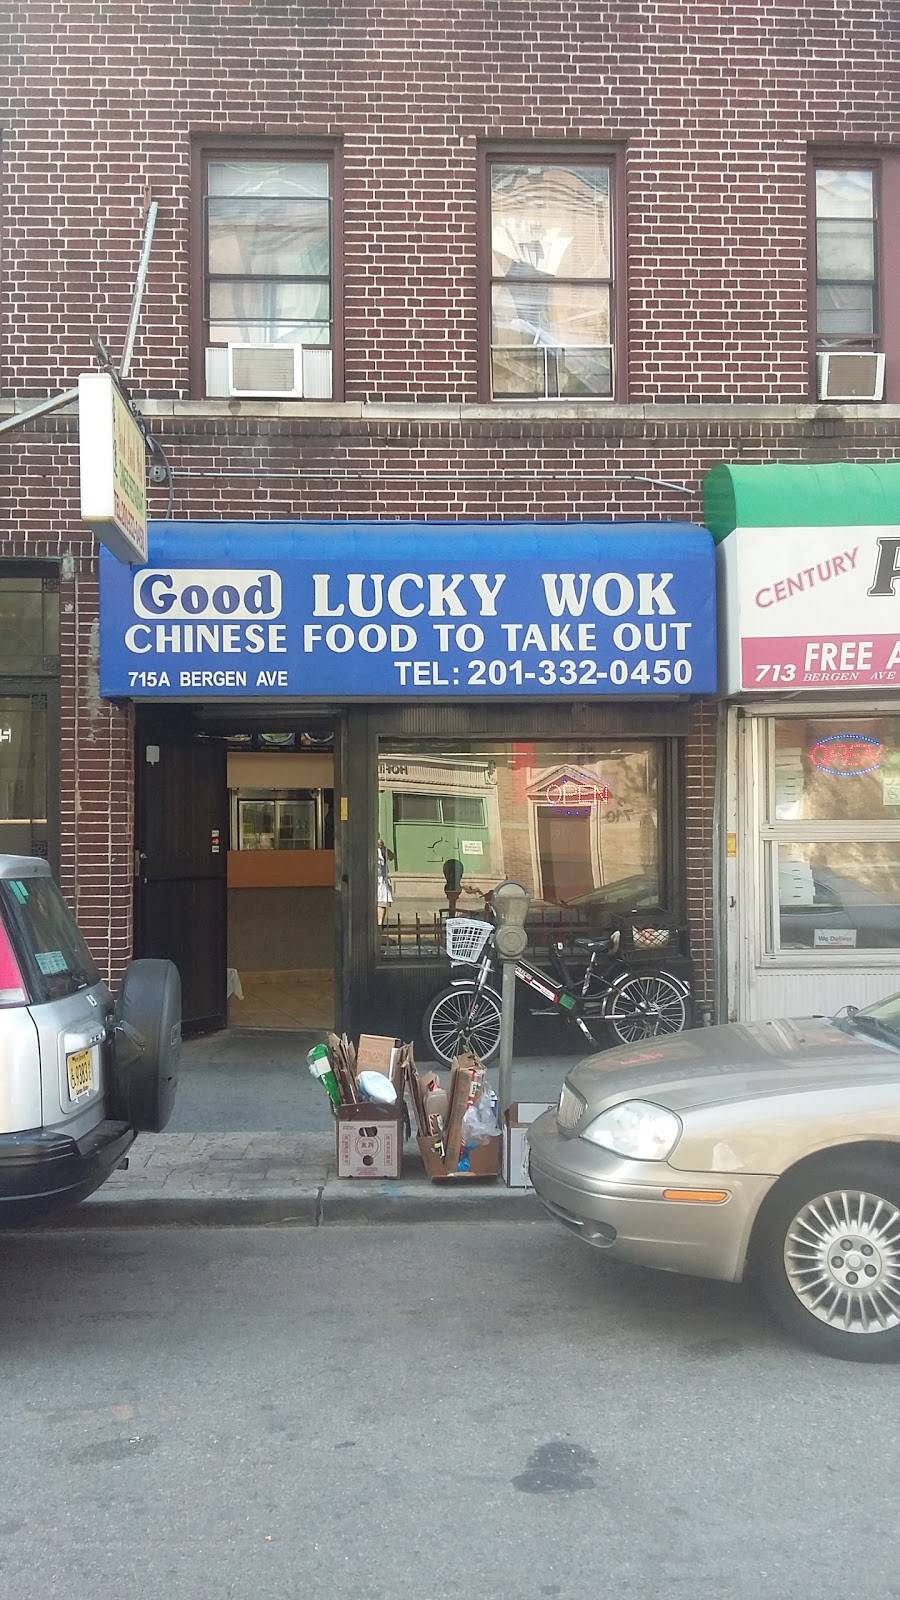 Good Lucky Wok | meal takeaway | 715 Bergen Ave, Jersey City, NJ 07306, USA | 2013320450 OR +1 201-332-0450